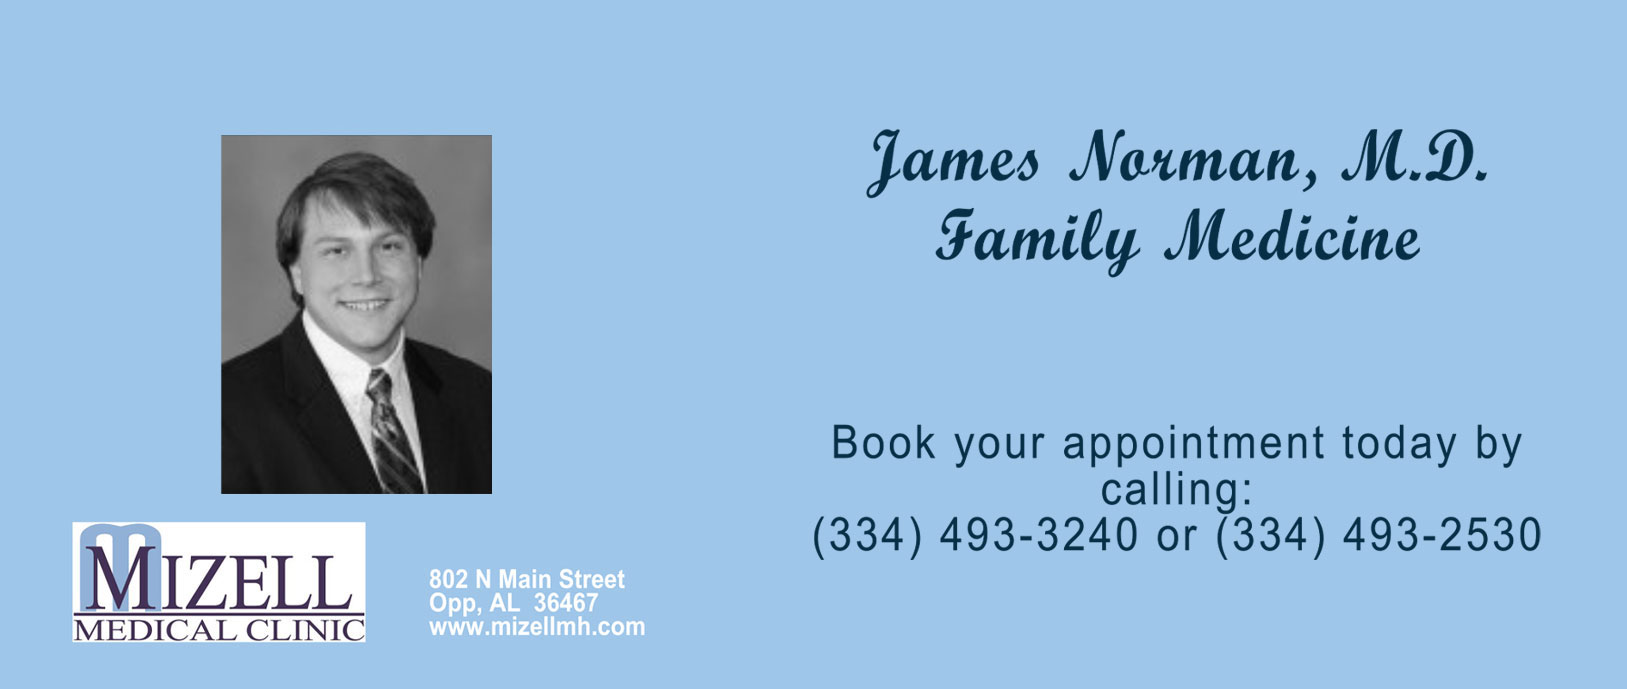 Coming soon!  James Normal, M.D. Family Medicine September 8, 2020 Book your appointment today by calling: (334) 493-3240 or (334) 493-2530